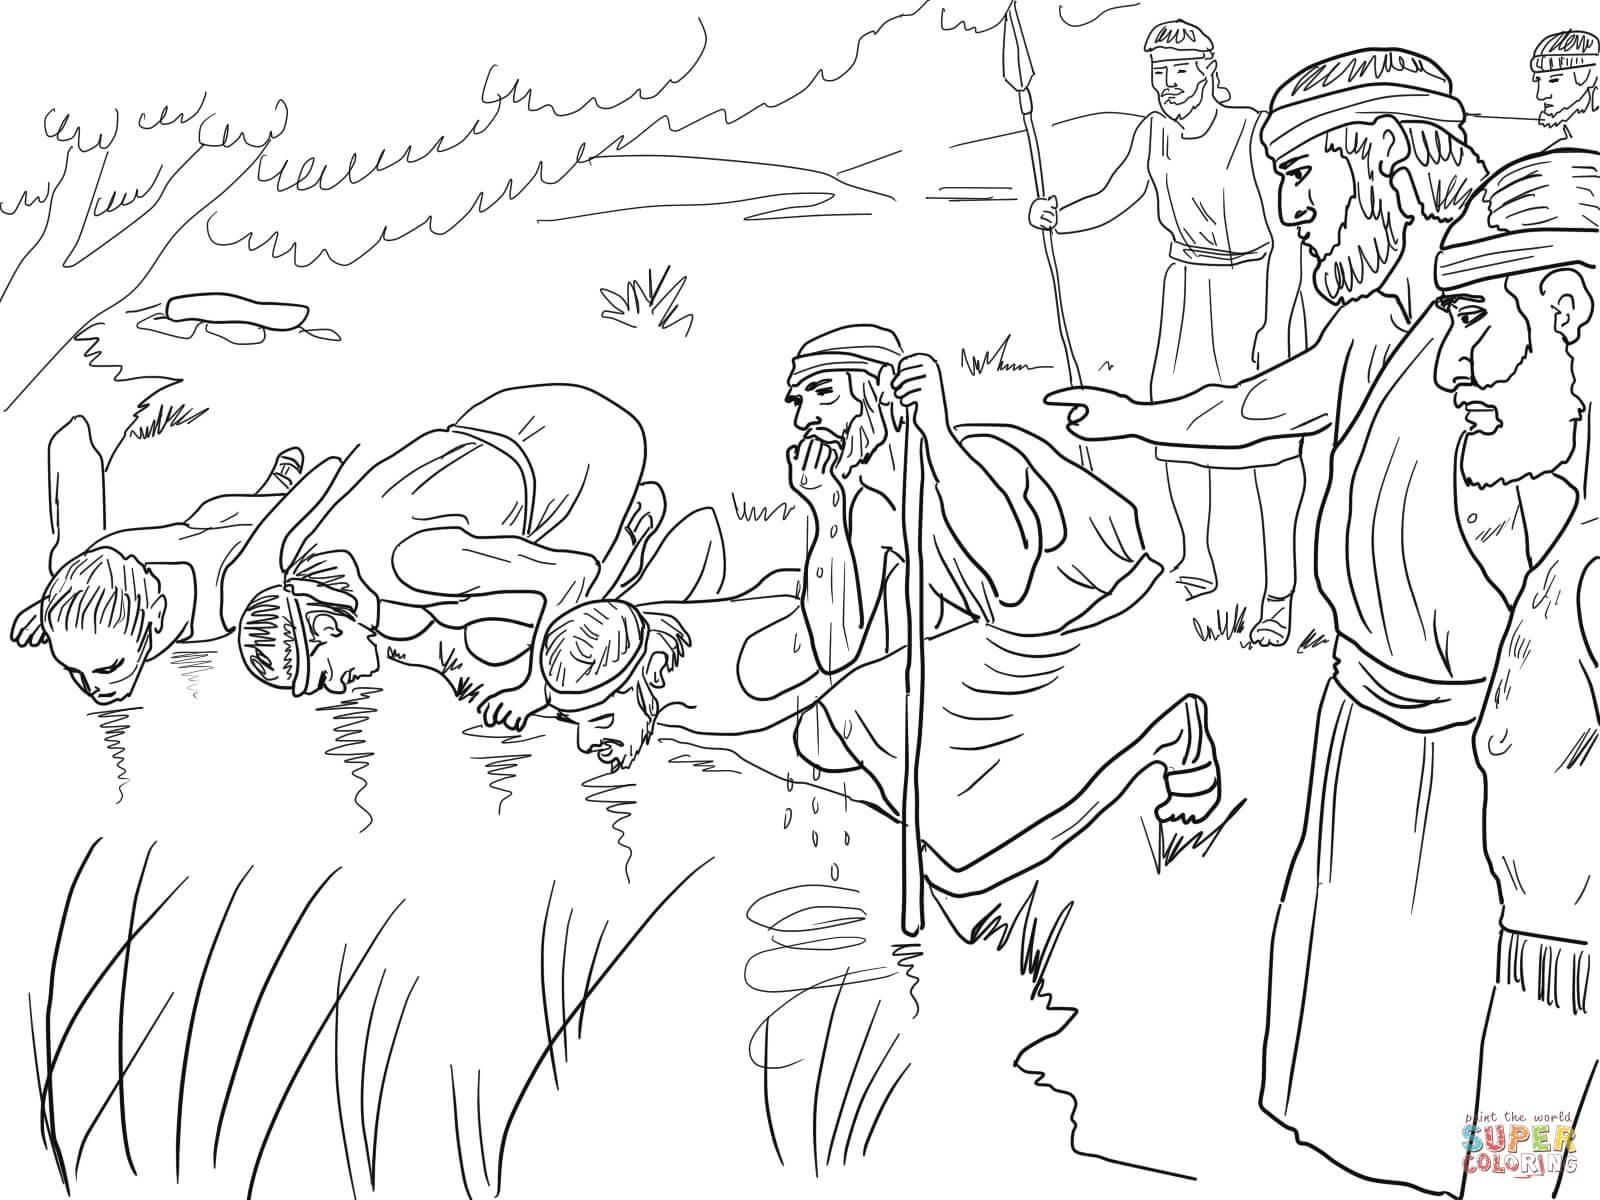 42 Coloring Page Gideon Sunday School Coloring Pages Bible Coloring Pages Coloring Pages